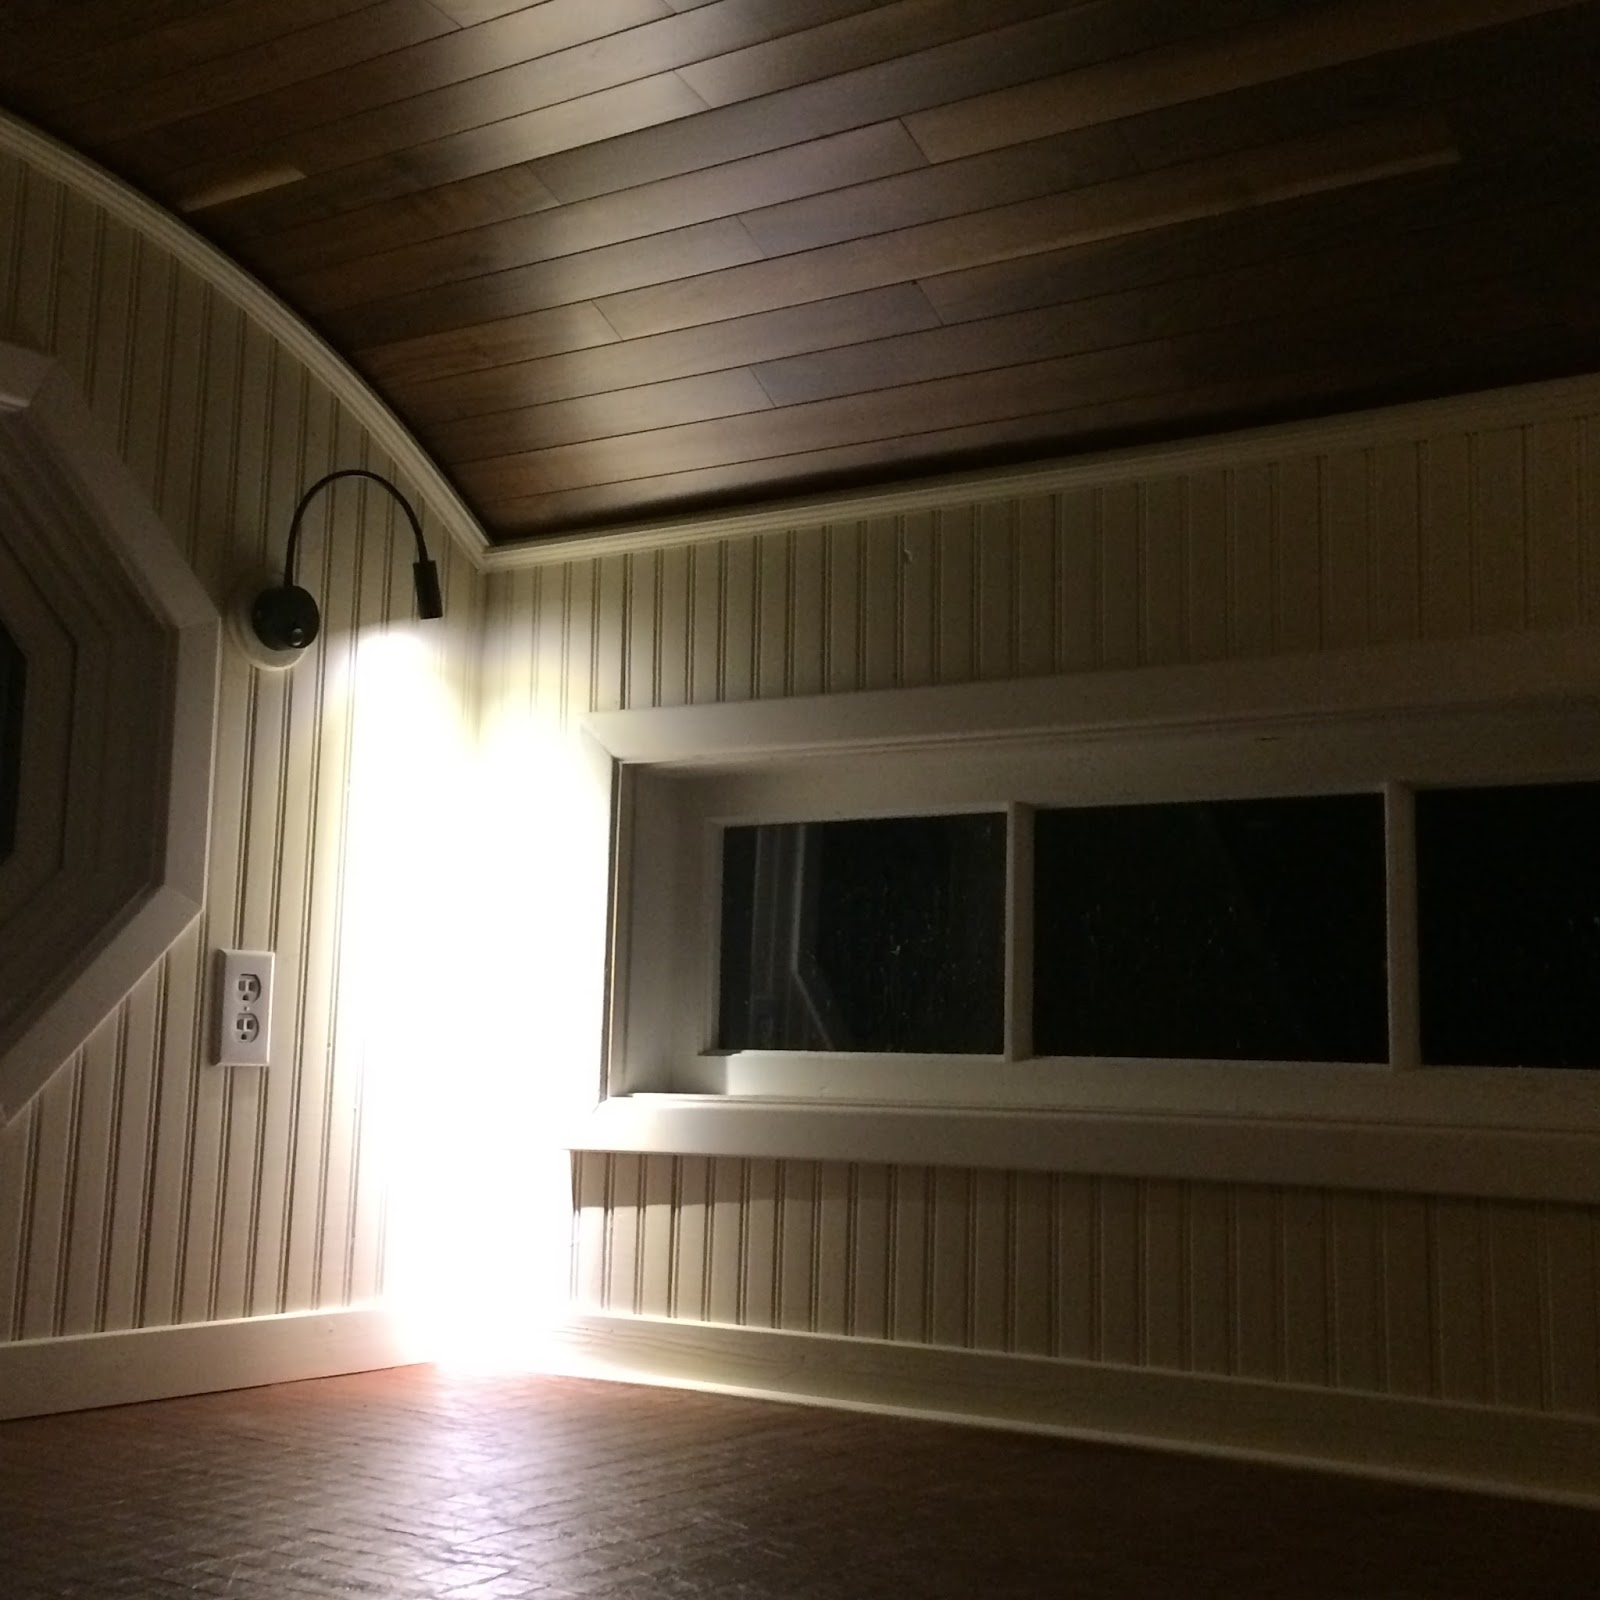 Led Baseboard Lighting Inside We First Installed Some Led Puck Lighting Near The Beds But Found Light Too Bright And Direction Was Wrong So We Replaced Them With Gooseneck Bra Tide Tiny House April 2017 Loft Floor Railing Baseboards